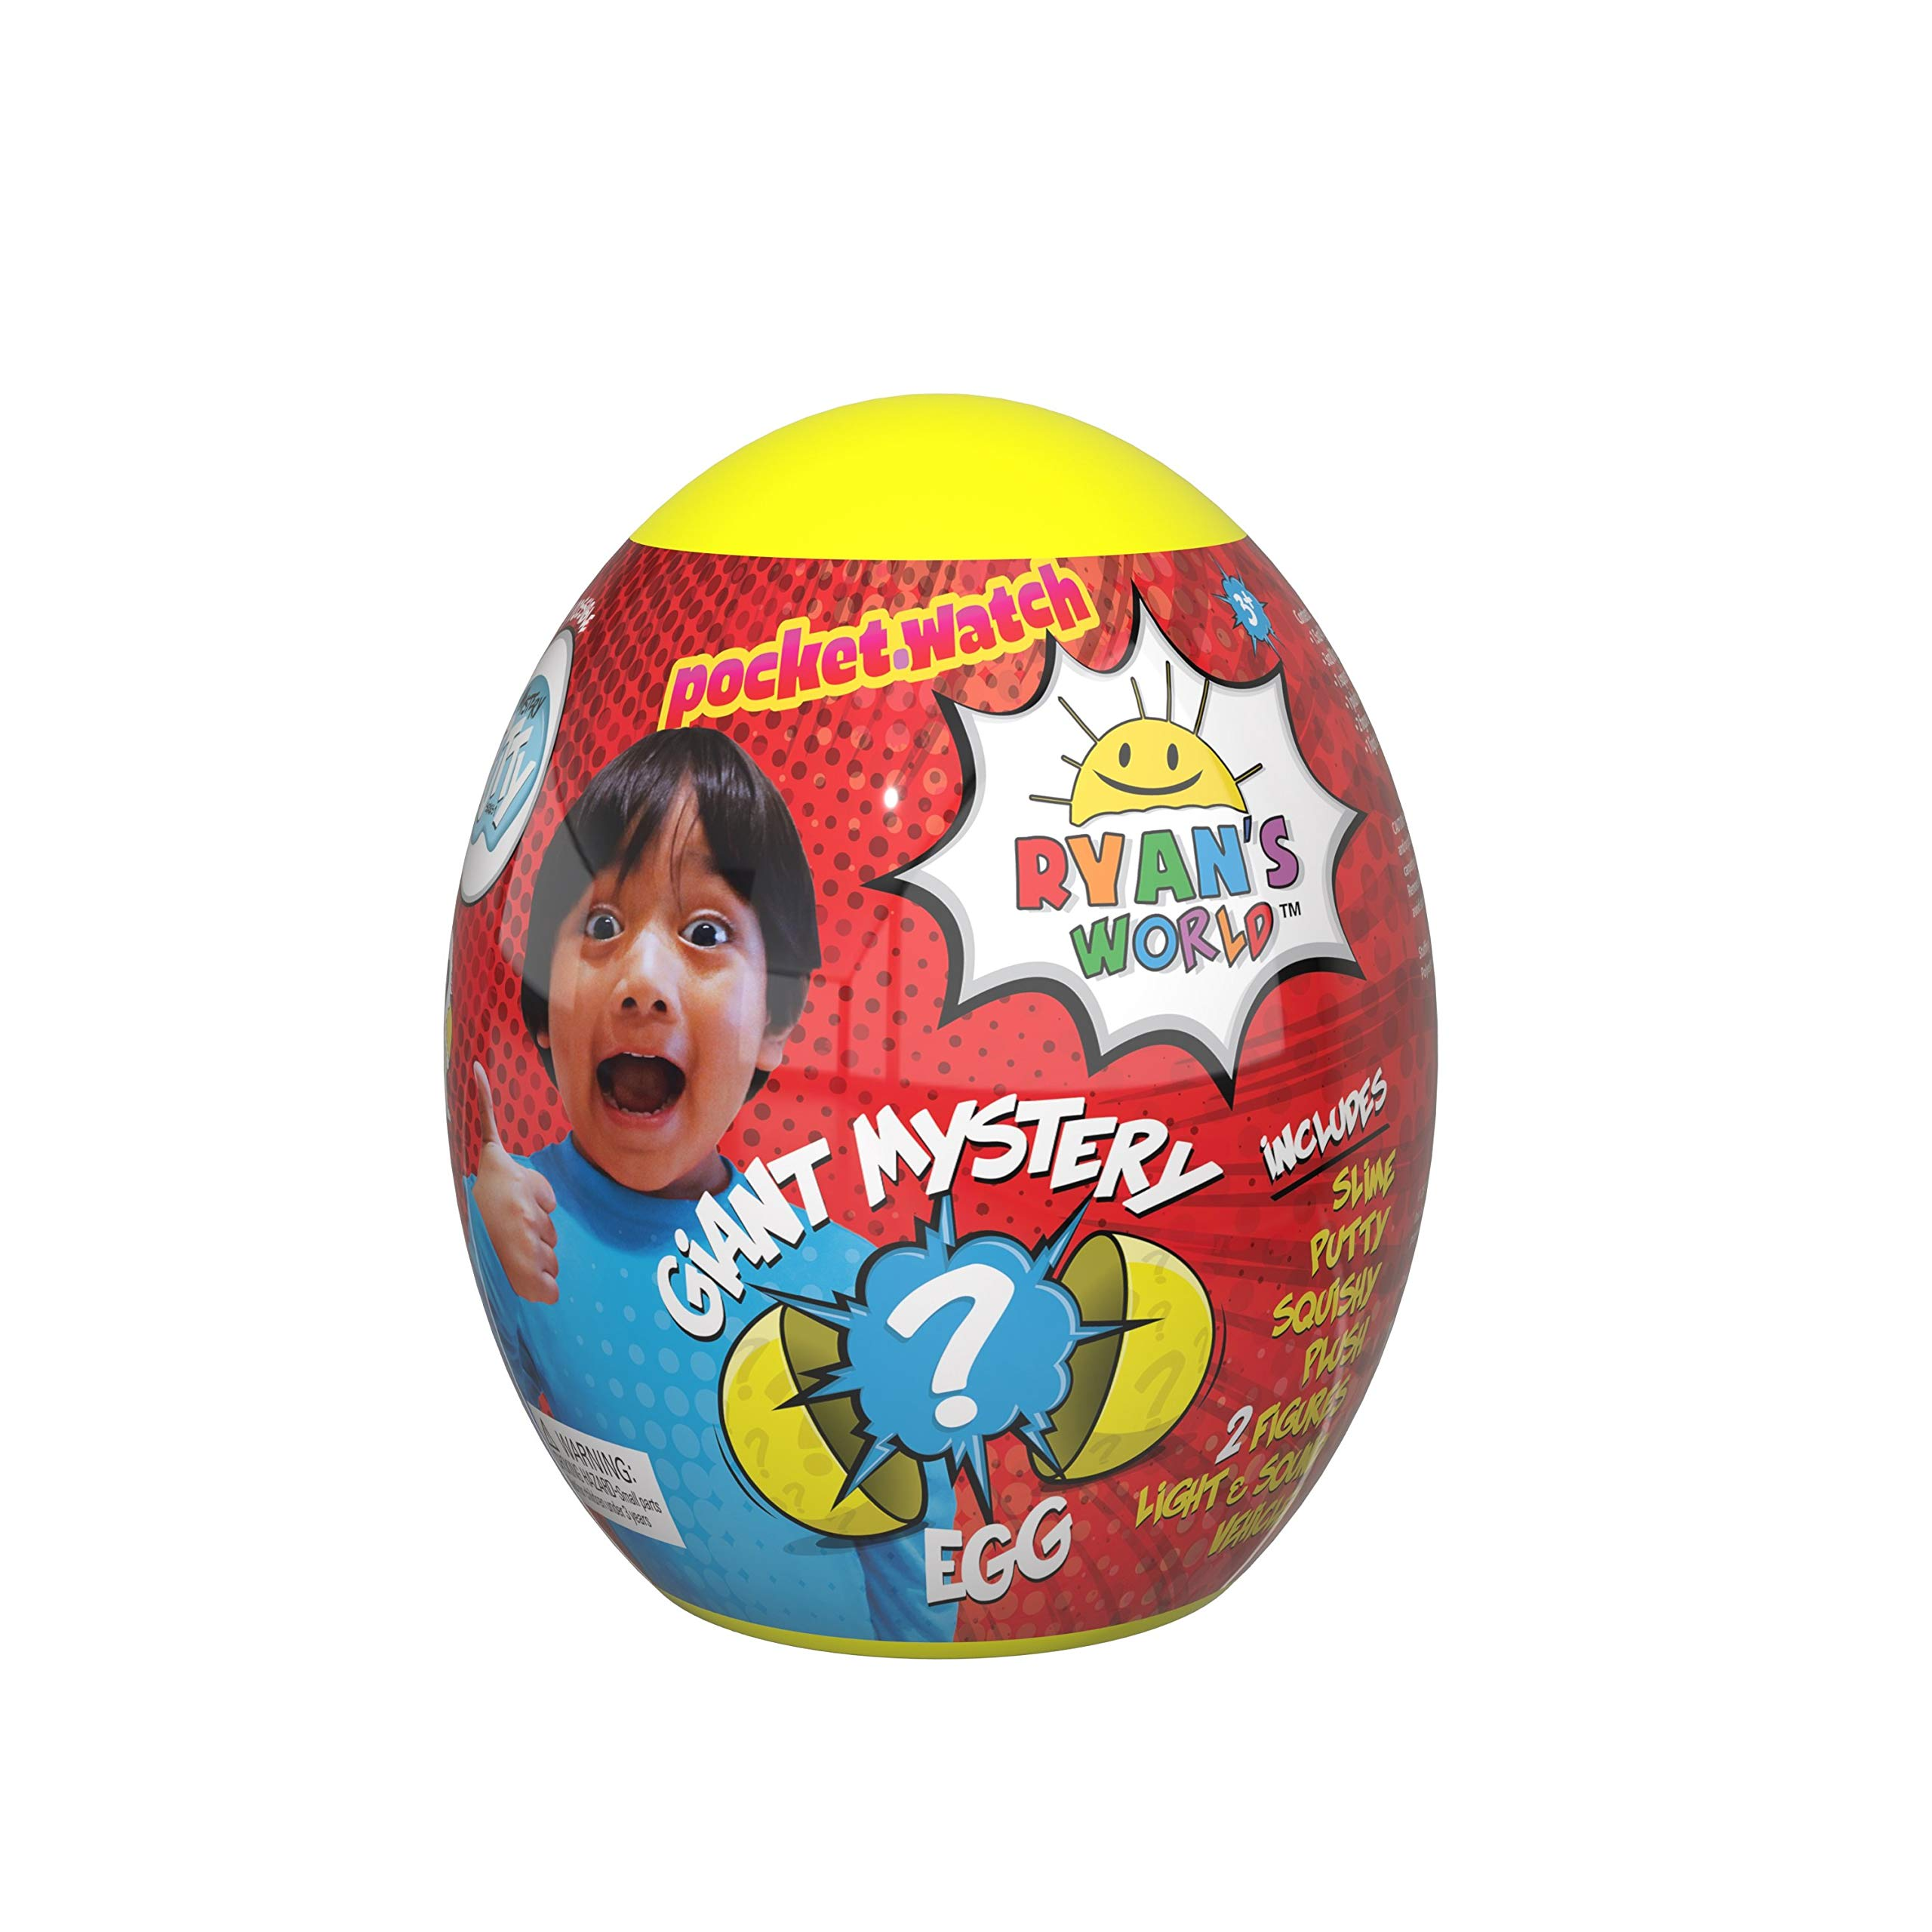 Poopsie Ryan's World Mystery Egg and Pack of Unicorn Slime W/ Pack a Hatch by Poopsie (Image #2)